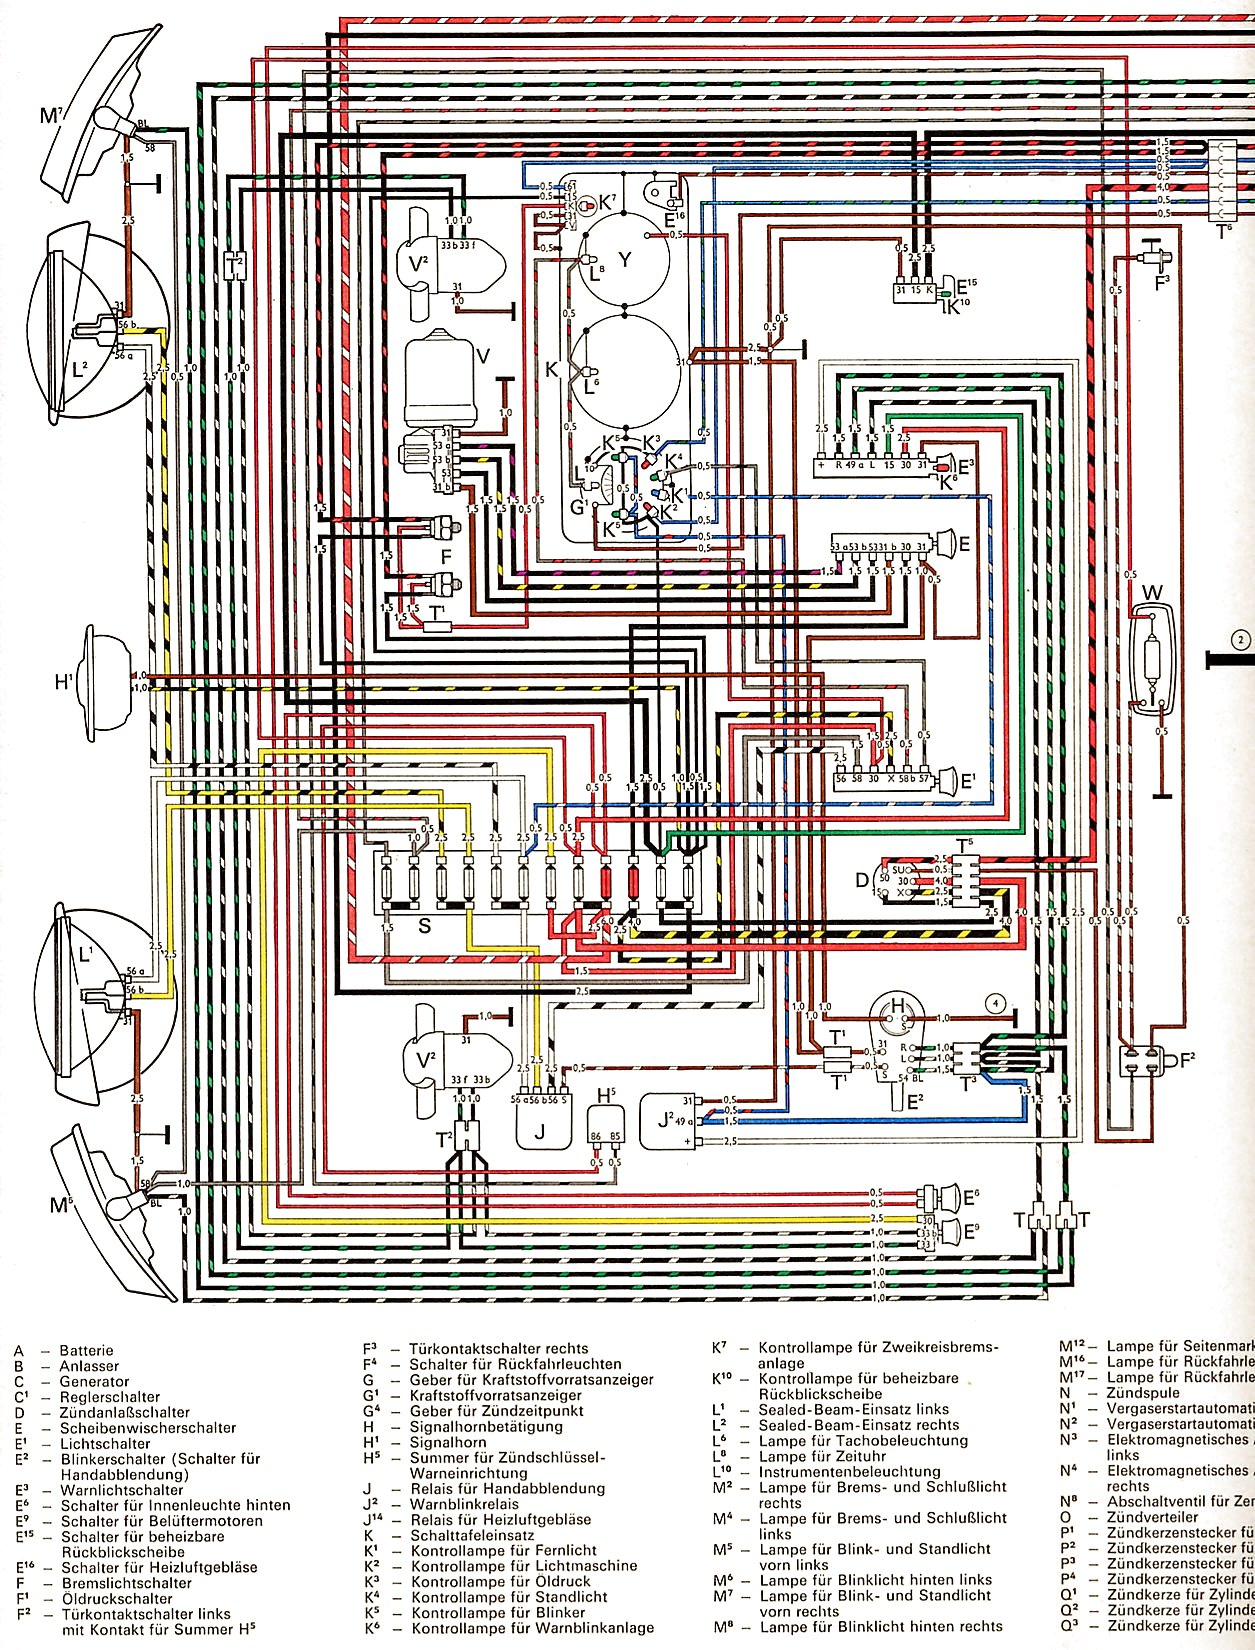 Transporter_USA_from_August_1971 1 how to read vw wiring diagrams basic motorcycle wiring diagram Wiring Harness Diagram at mifinder.co